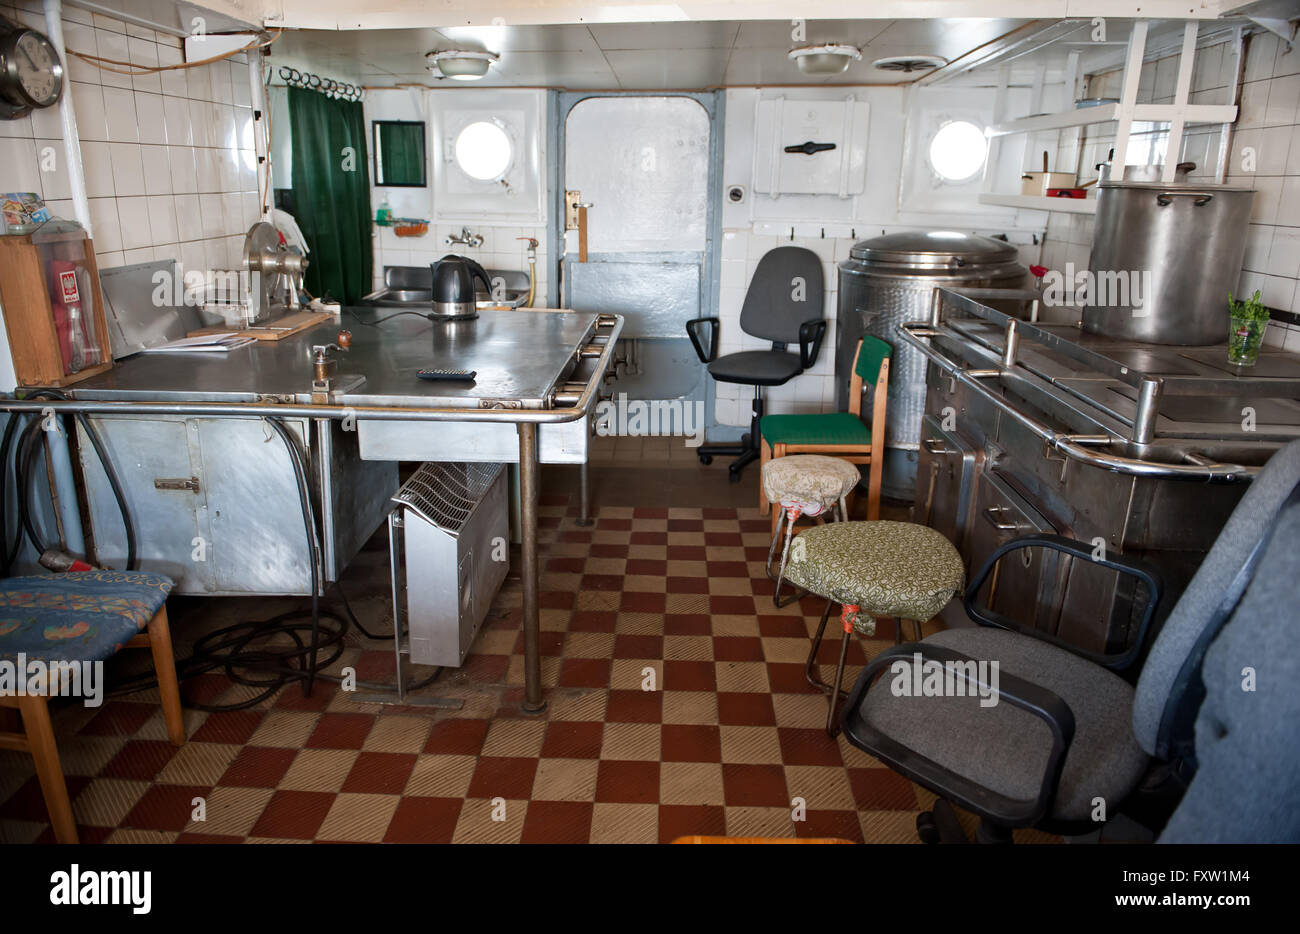 Arte Cucine Gdynia Cabin Ship Immagini Cabin Ship Fotos Stock Alamy